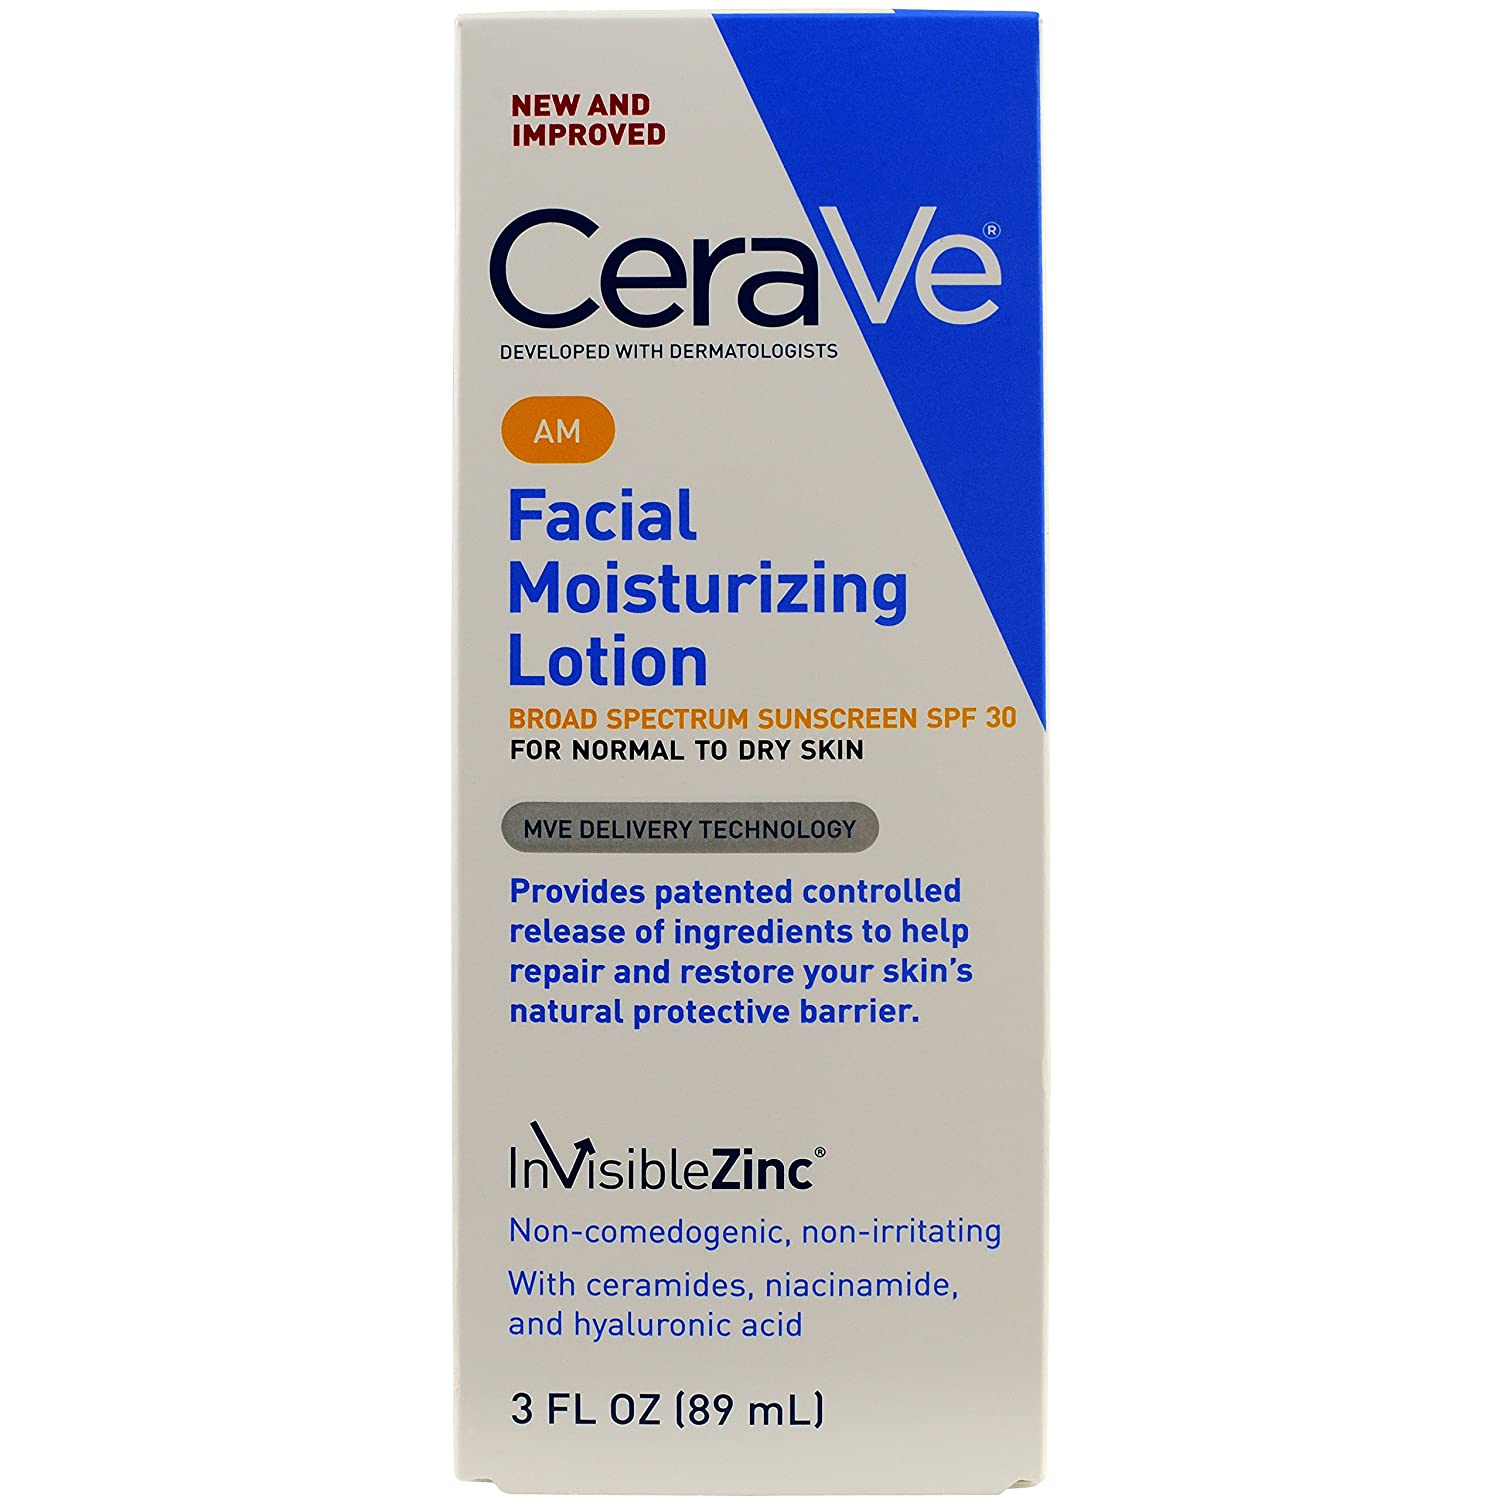 CeraVe Moisturizing Facial Lotion AM review